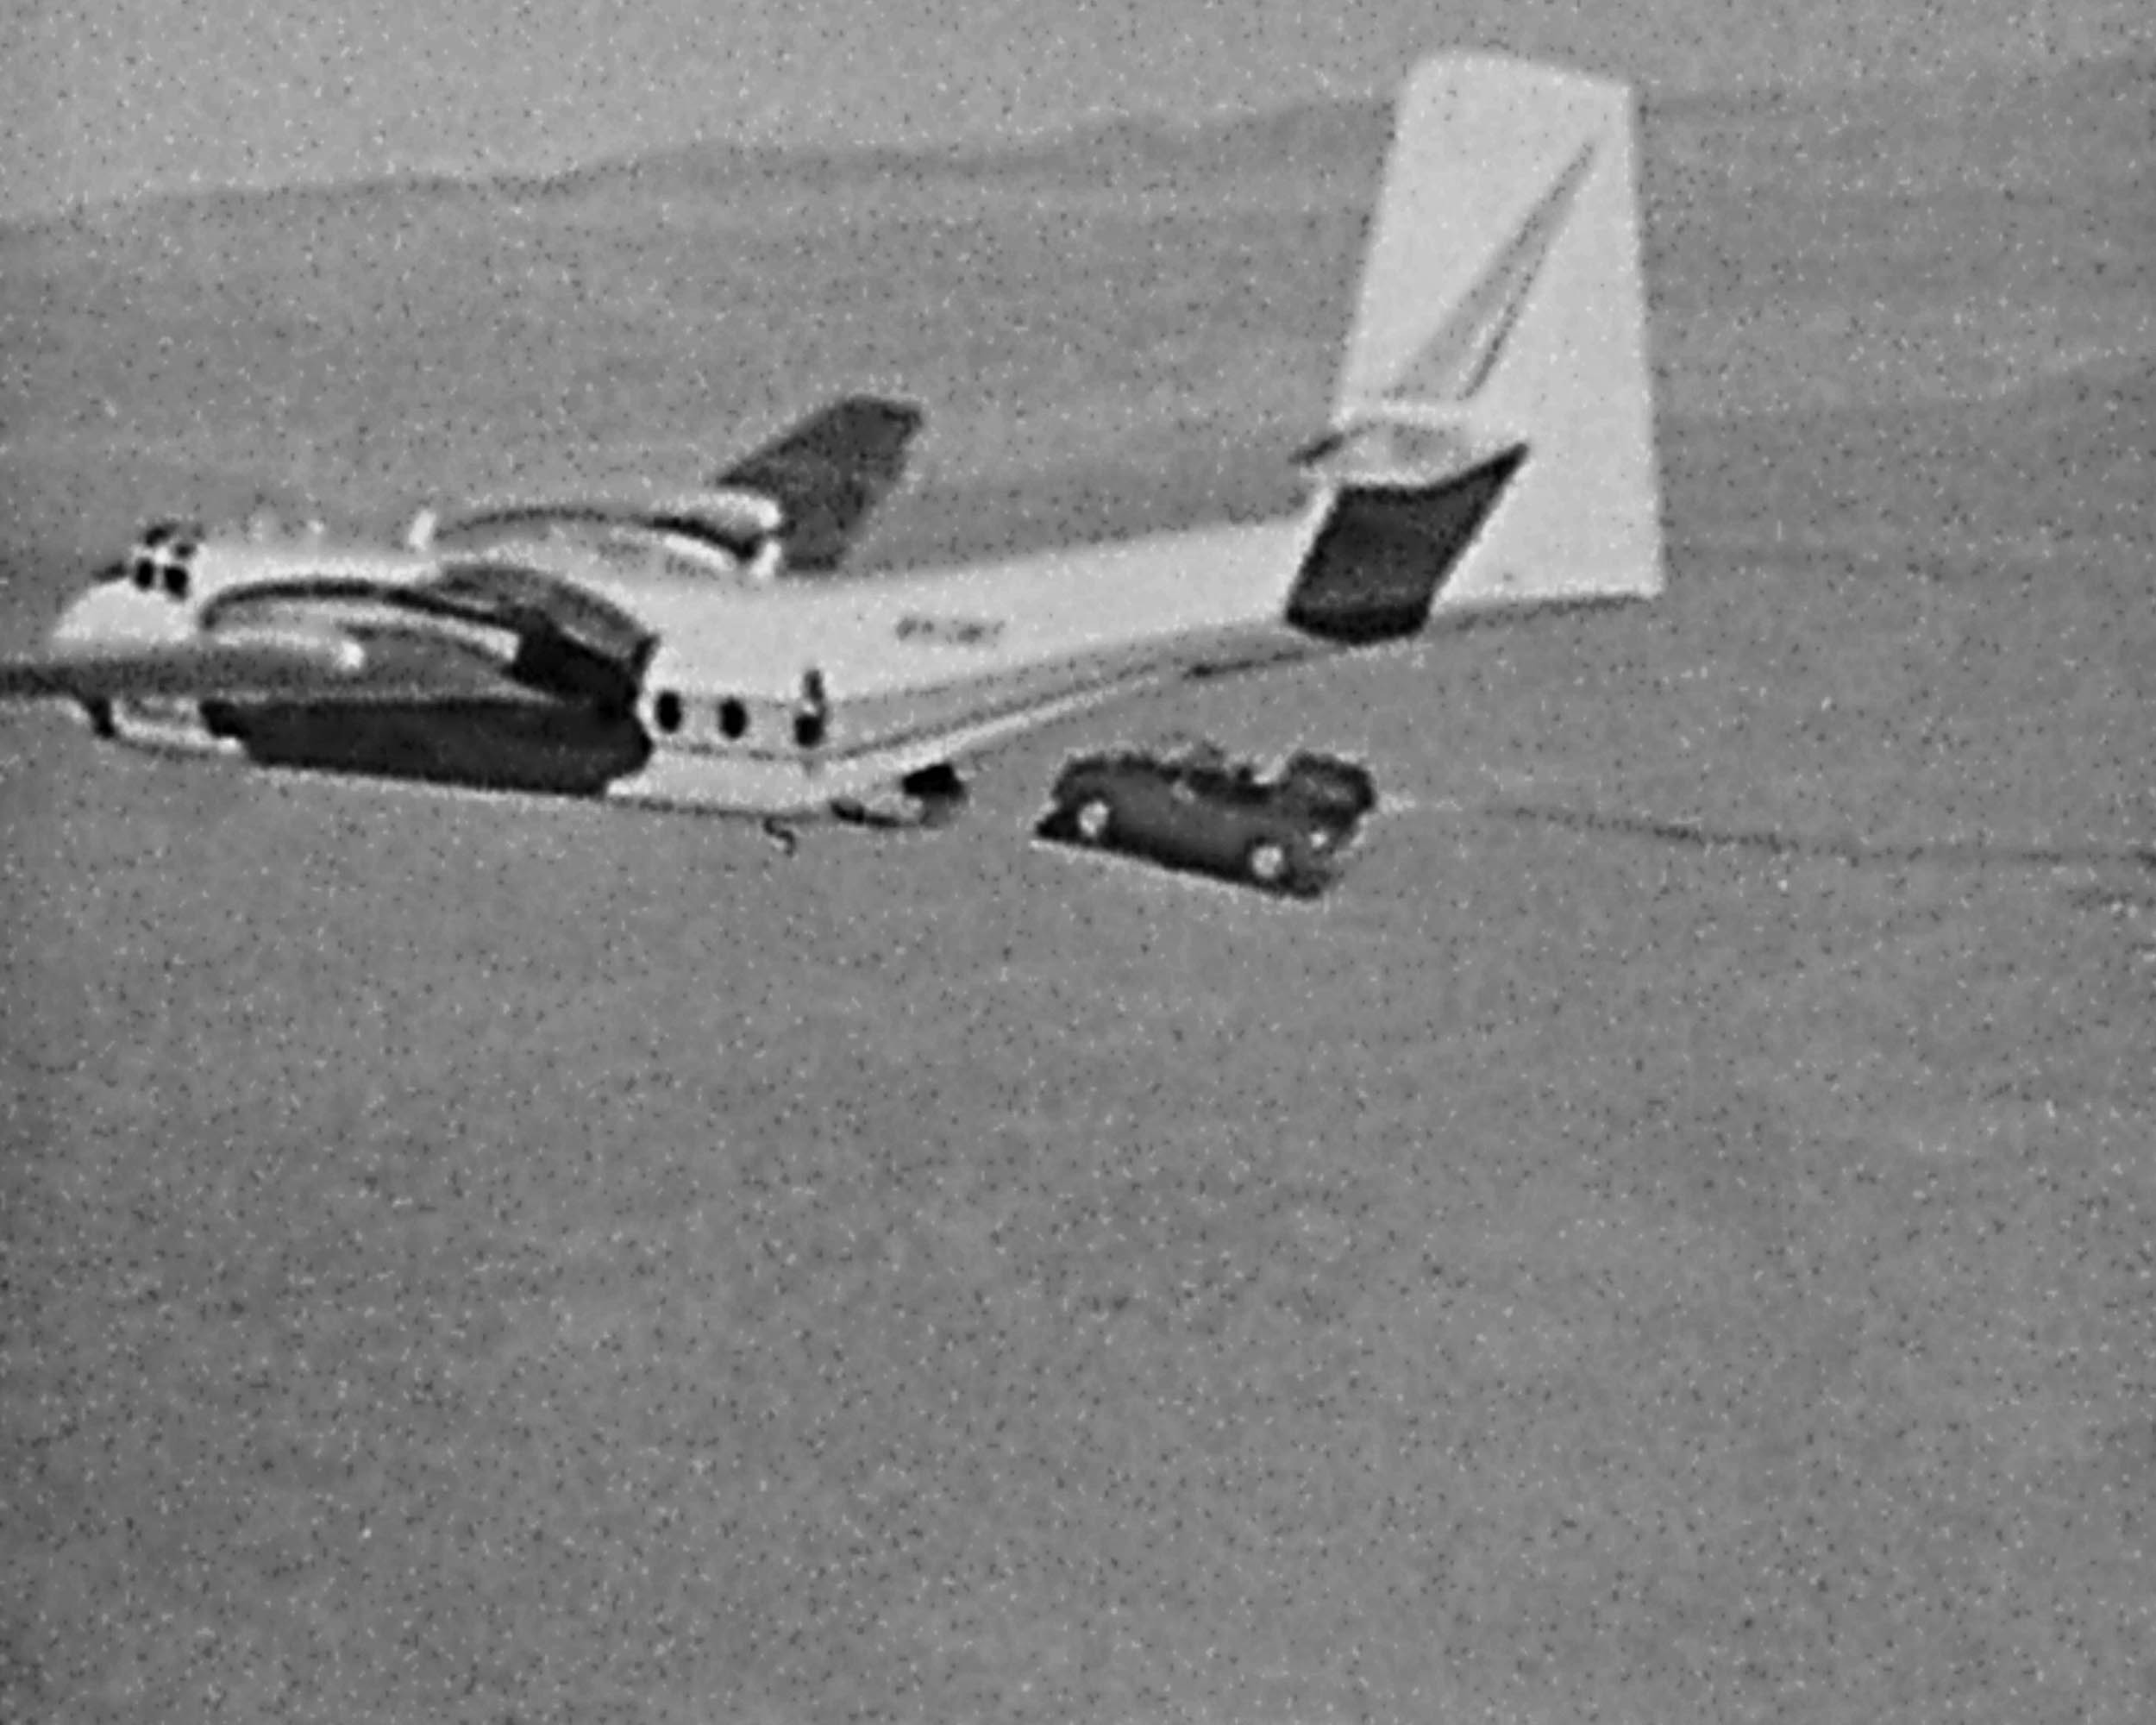 car falling out of a plane